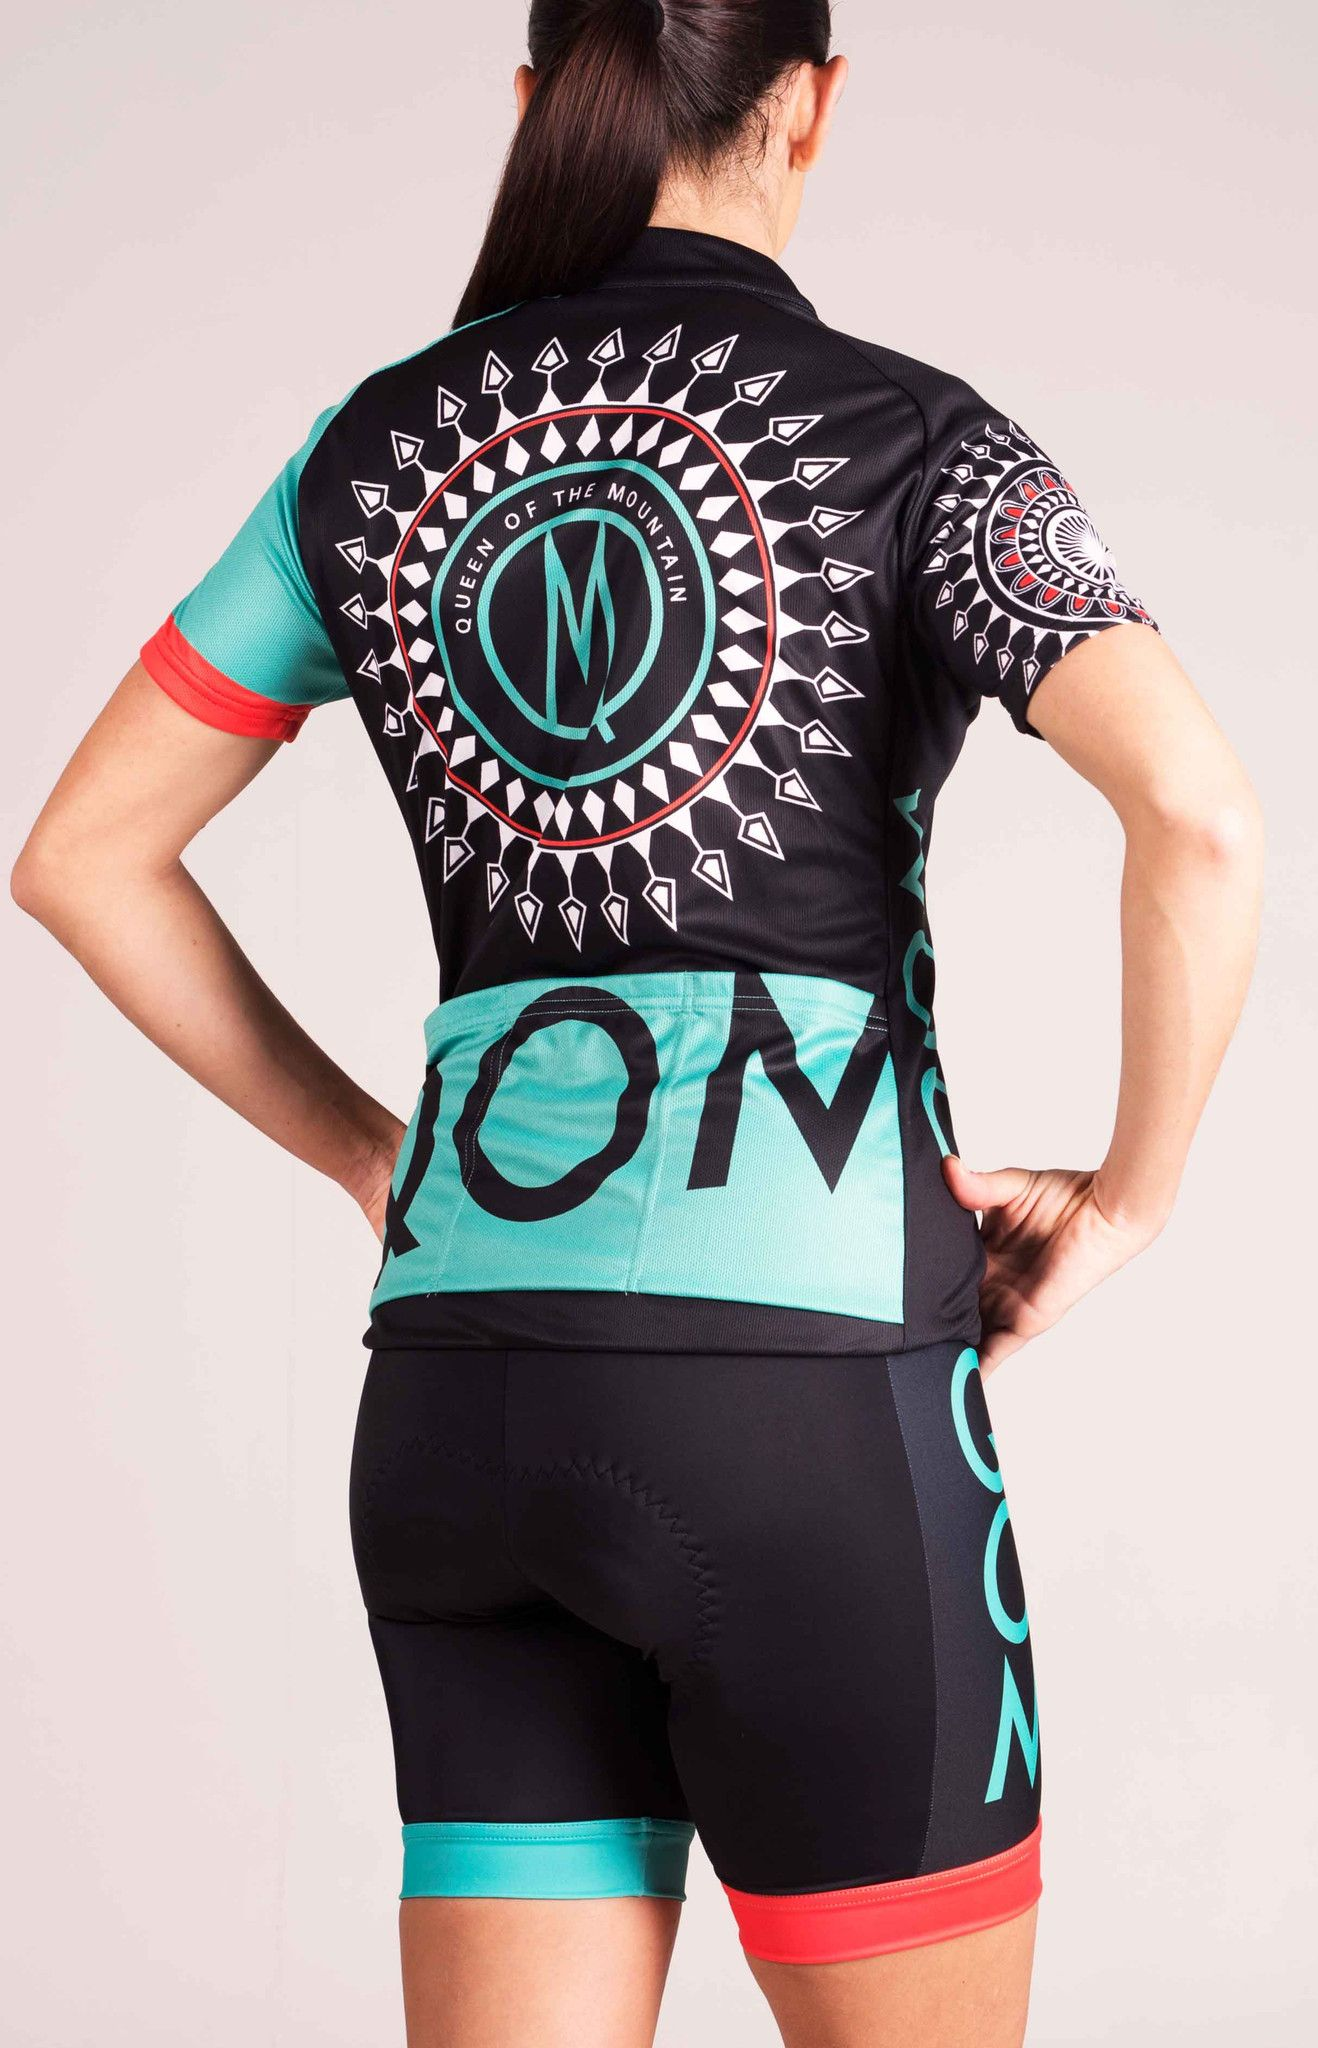 Cycling Wear Queen Of The Mountain Women 39s Cycling Apparel And T Shirts